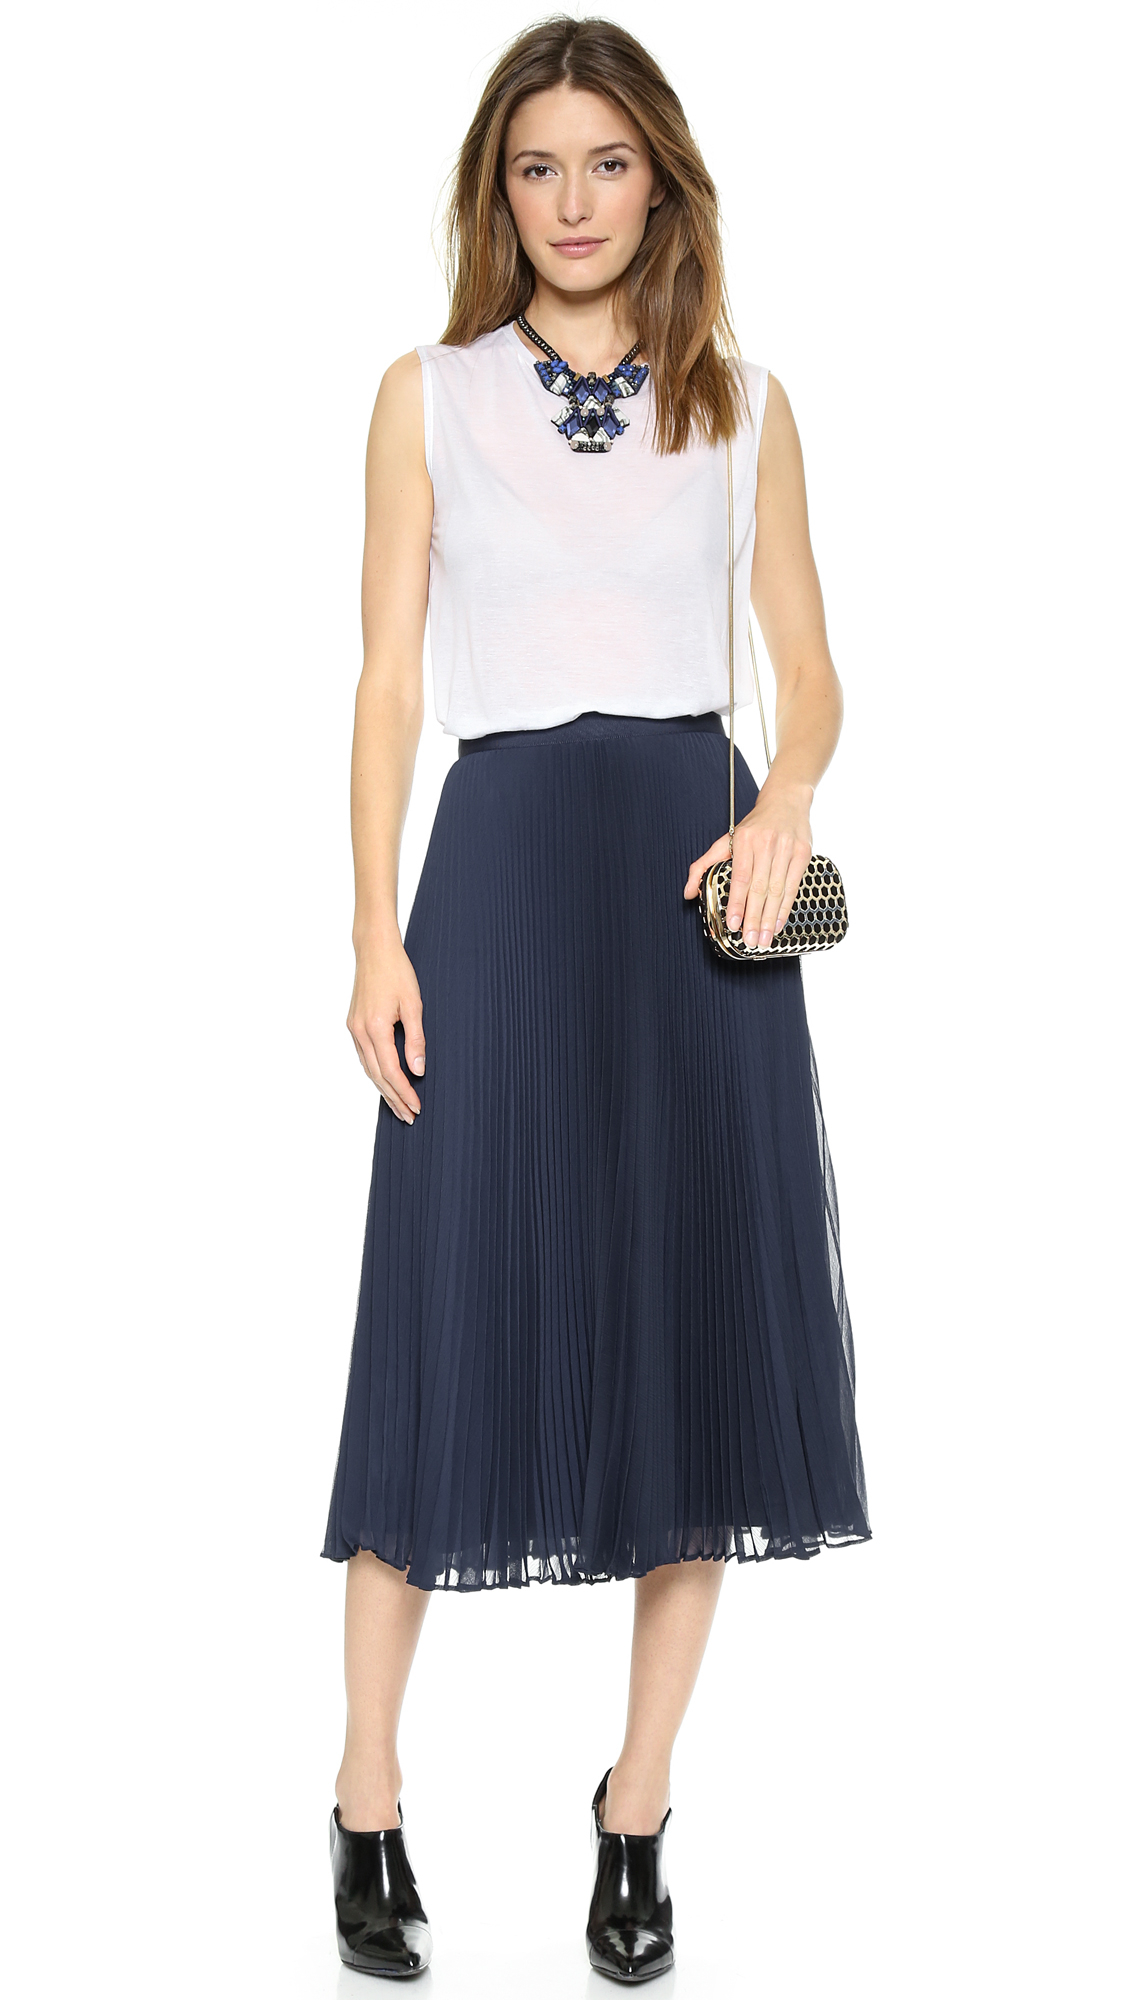 Alice   olivia Alice   Olivia Pleated Midi Skirt - Navy in Blue | Lyst